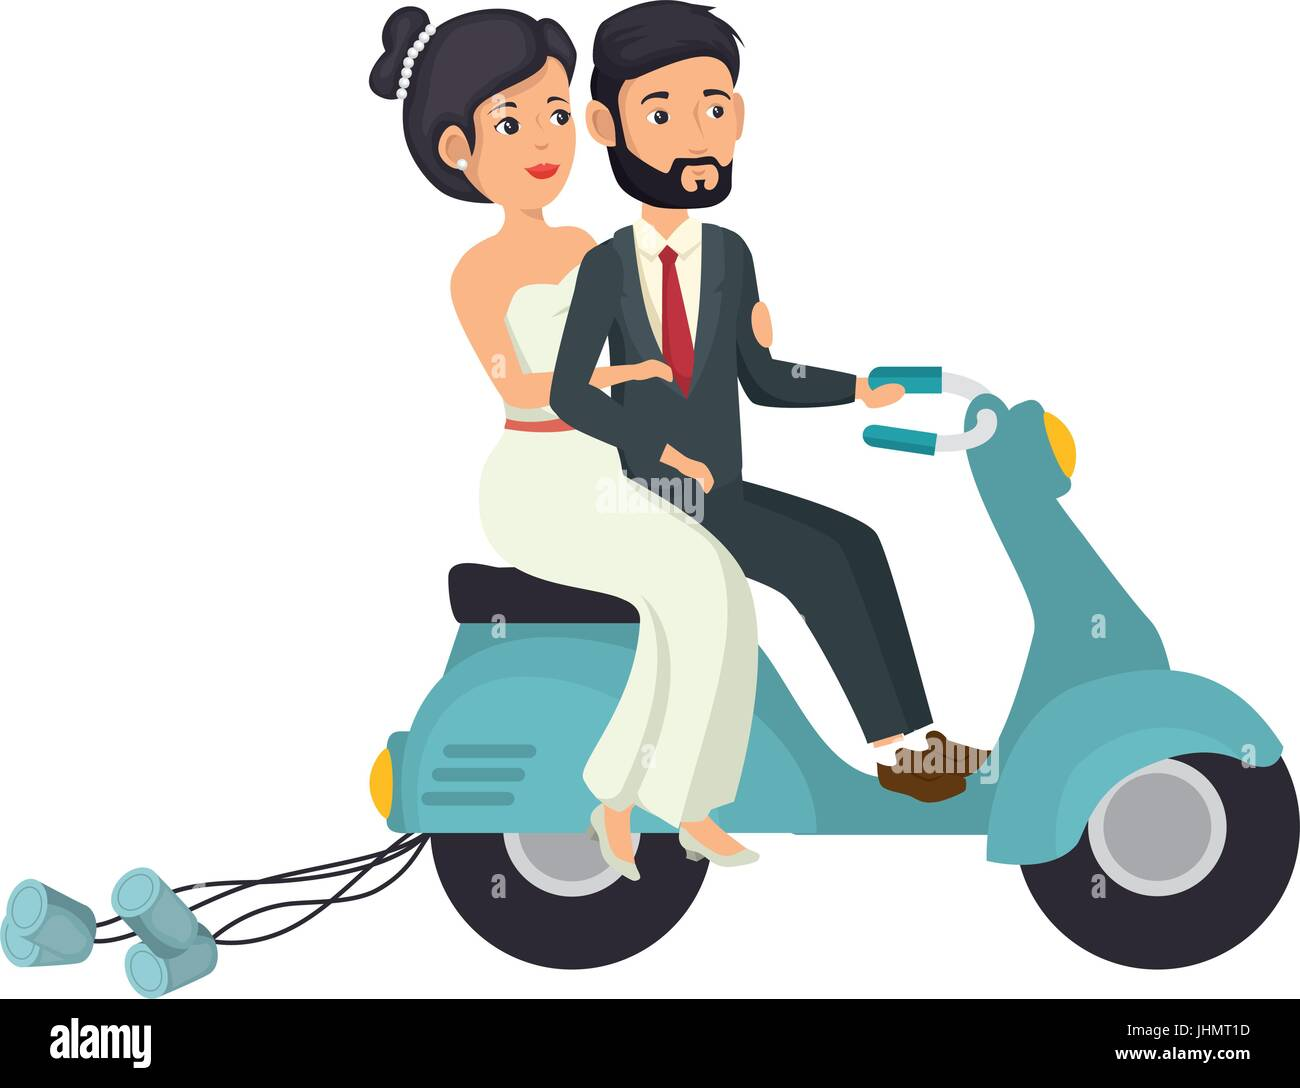 Motorcycle With Just Married Couple Icon Over White